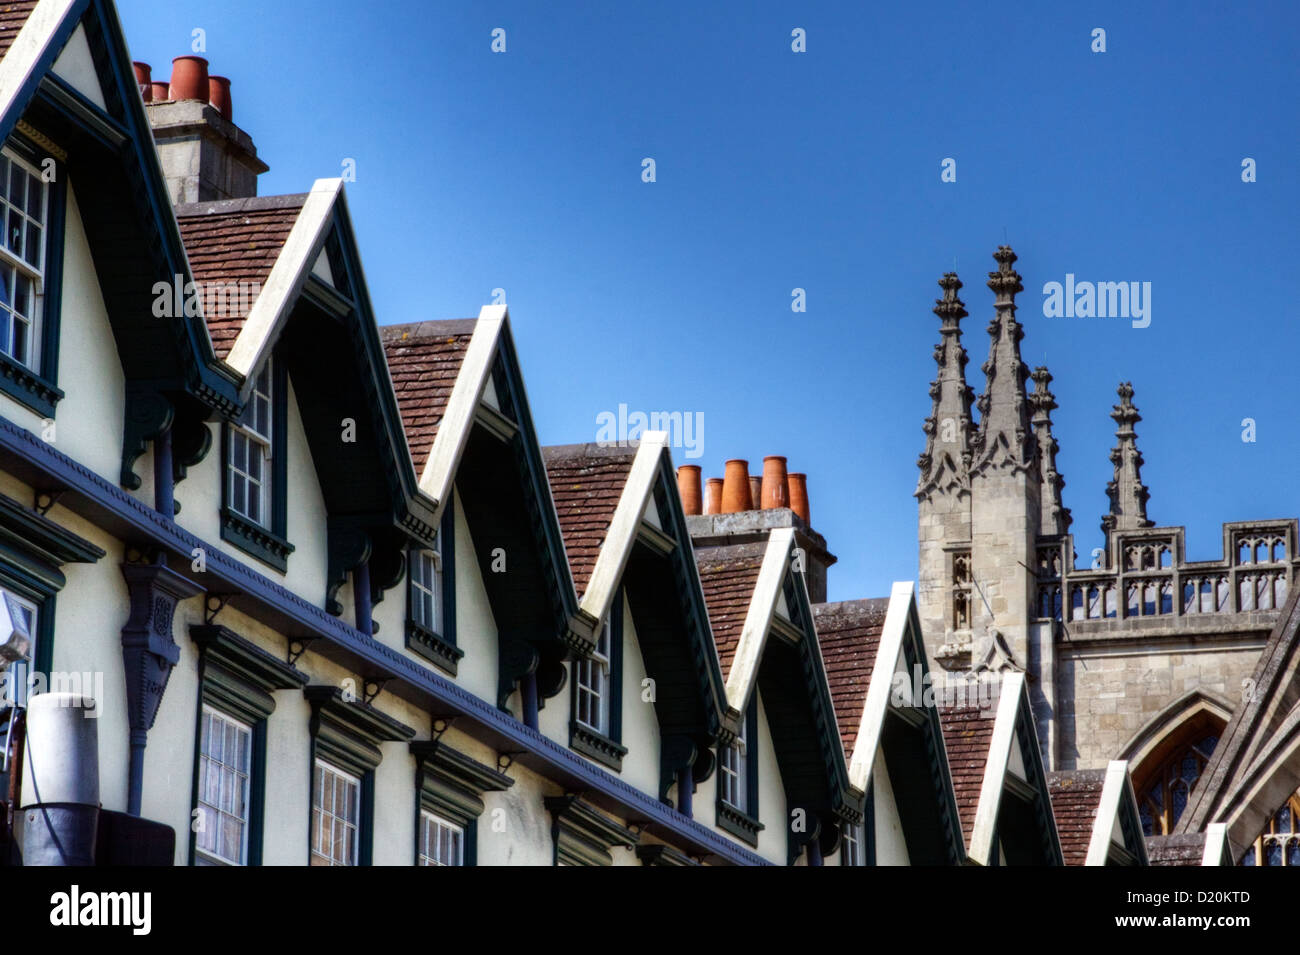 A row of rooftops leading to the Abbey in the City of Bath, Somerset, England, UK - Stock Image